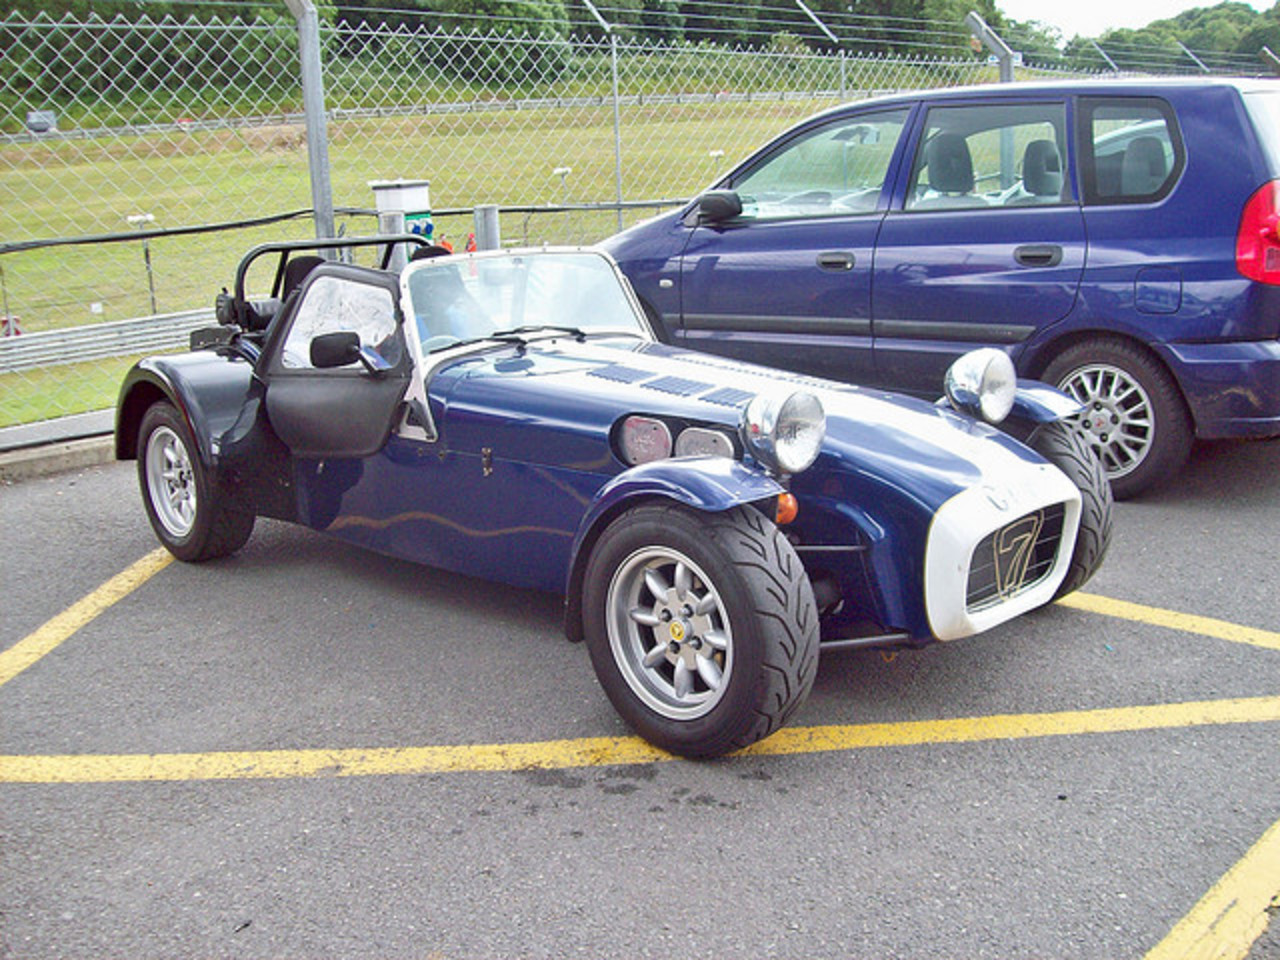 35 Caterham Seven Sprint (2008) | Flickr - Photo Sharing!